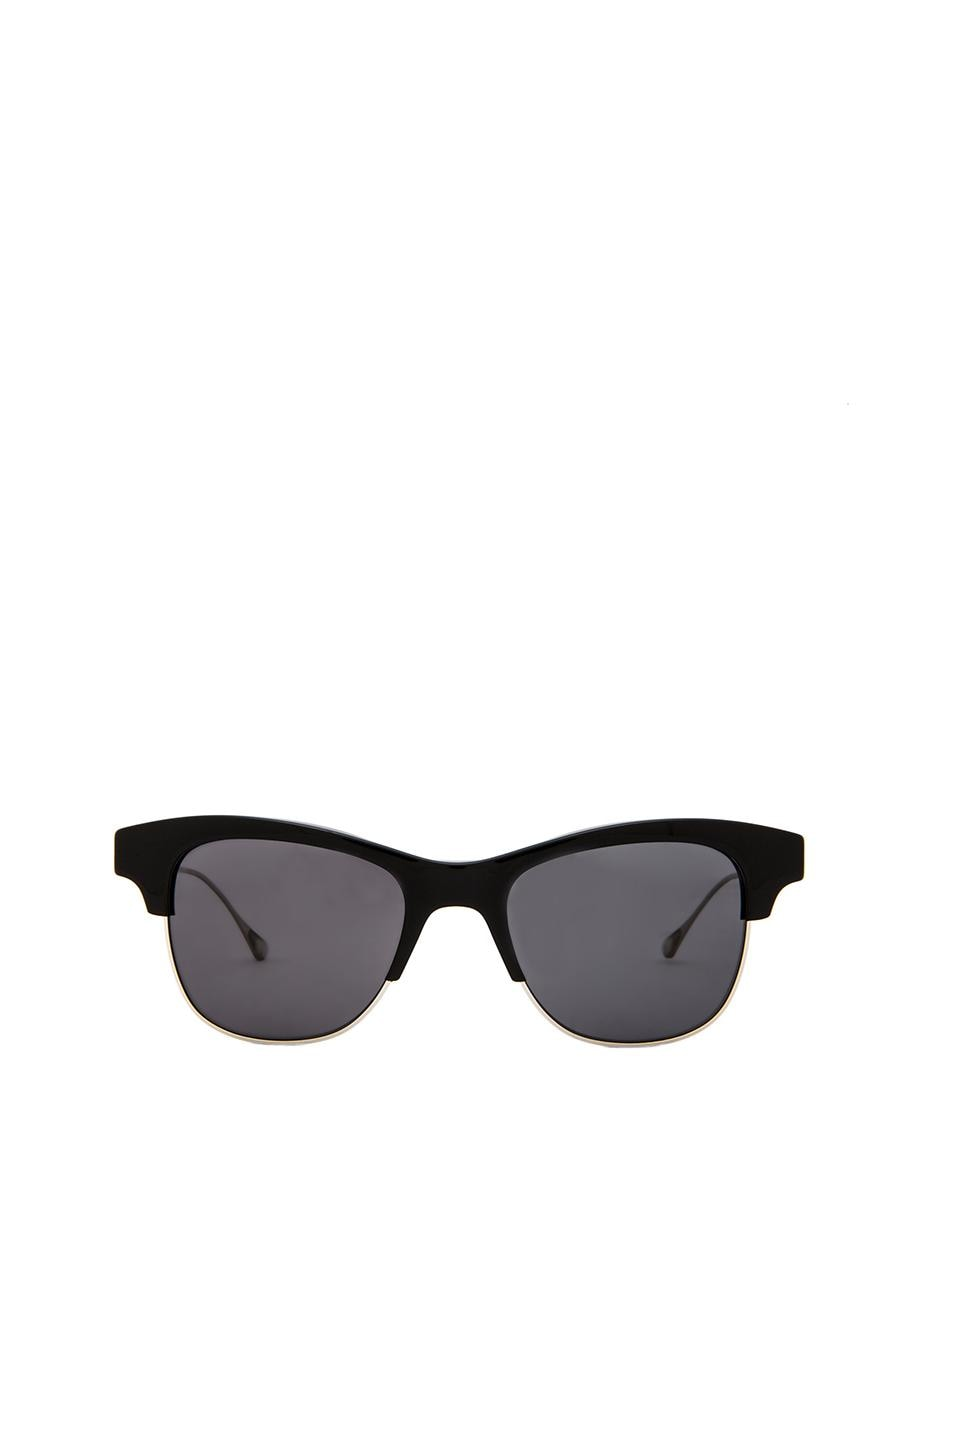 Oliver Peoples WEST Hobson in Black & Flint Polar